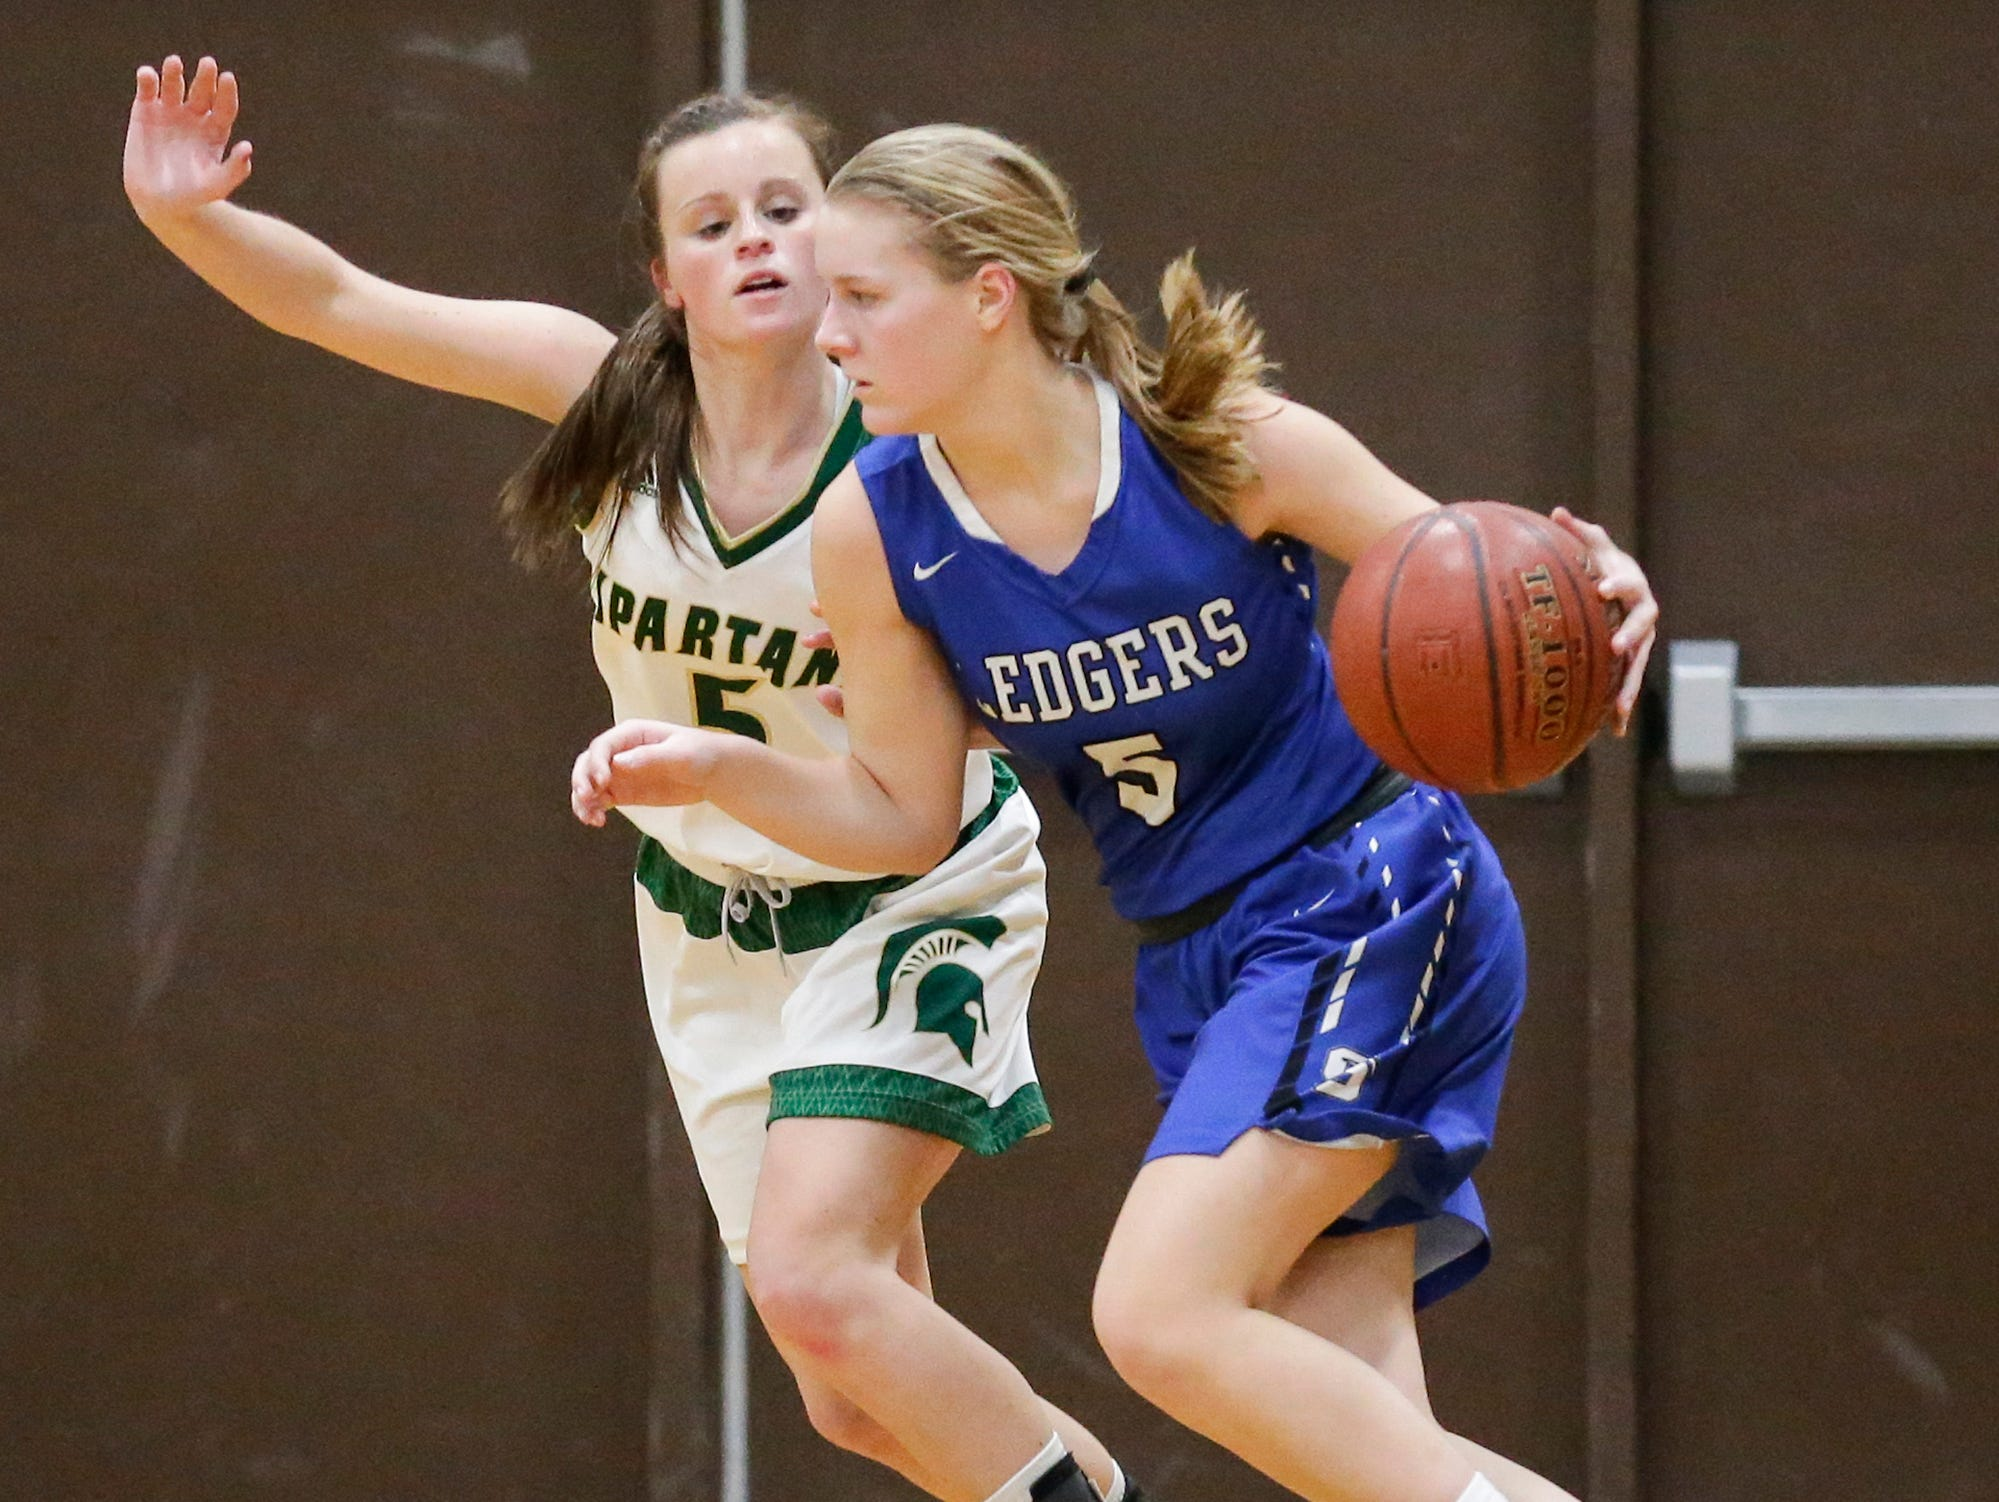 St. Mary's Springs Academy girls basketball's Gracie Rieder makes her way past Laconia High School's Jen Beattie Tuesday, January 15, 2019 during their game in Rosendale. Laconia won the game 57-45. Doug Raflik/USA TODAY NETWORK-Wisconsin